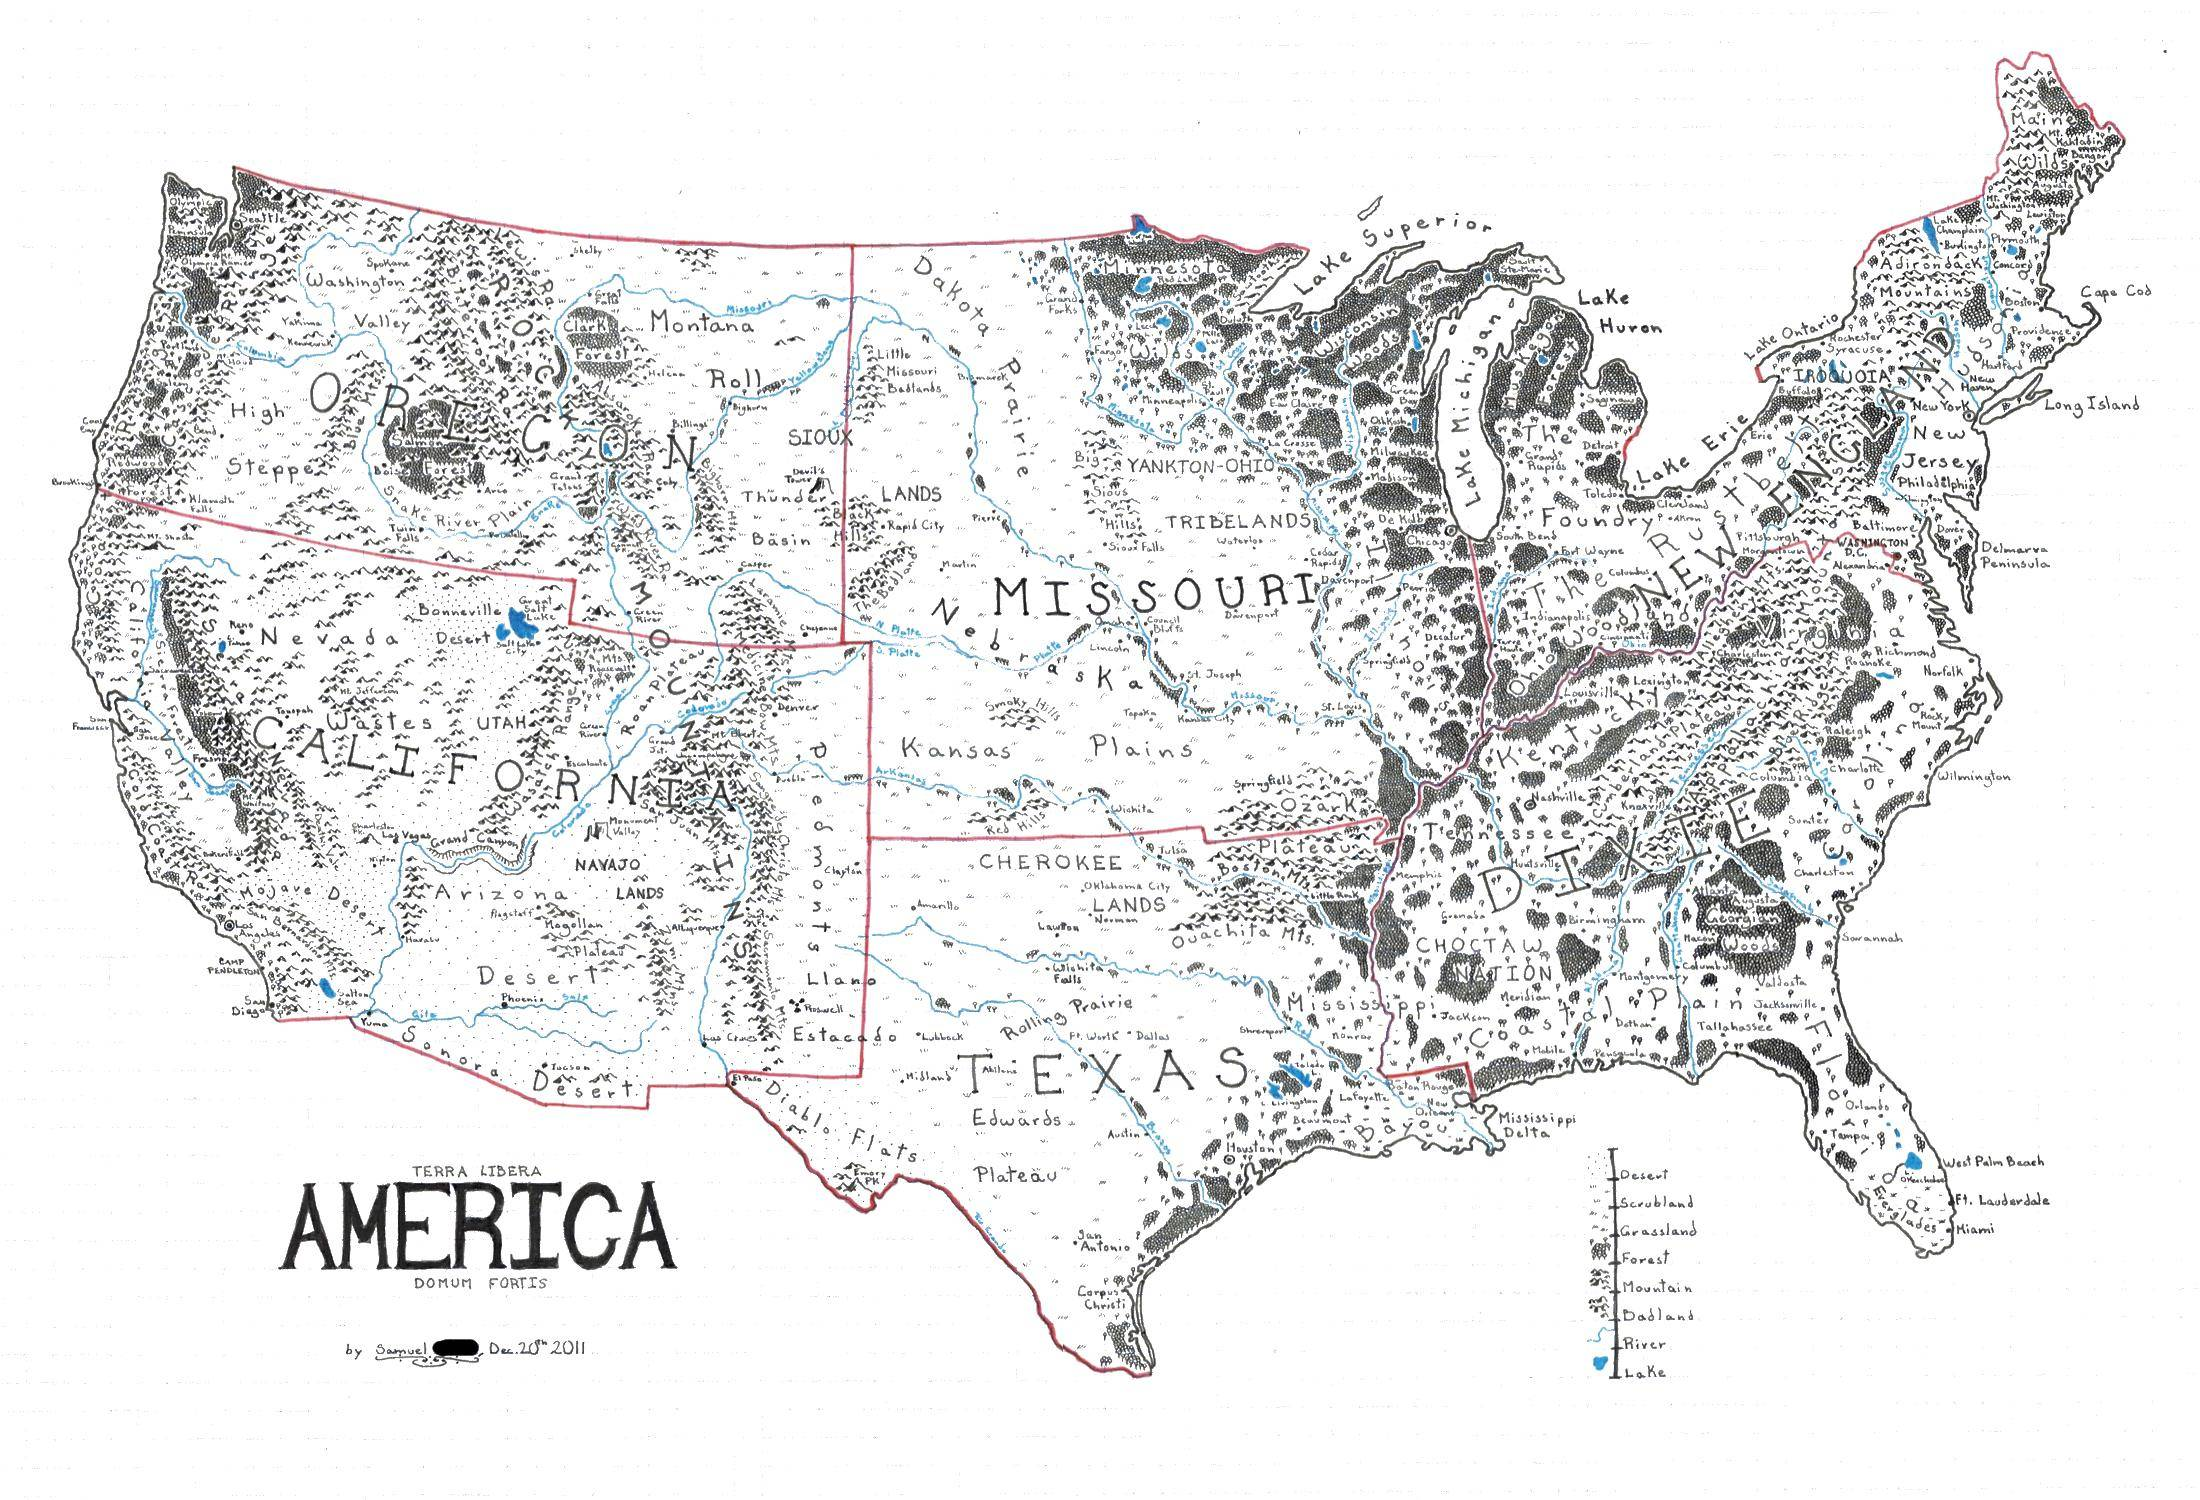 A Map Of The United States Drawn In The Style Of Lord Of